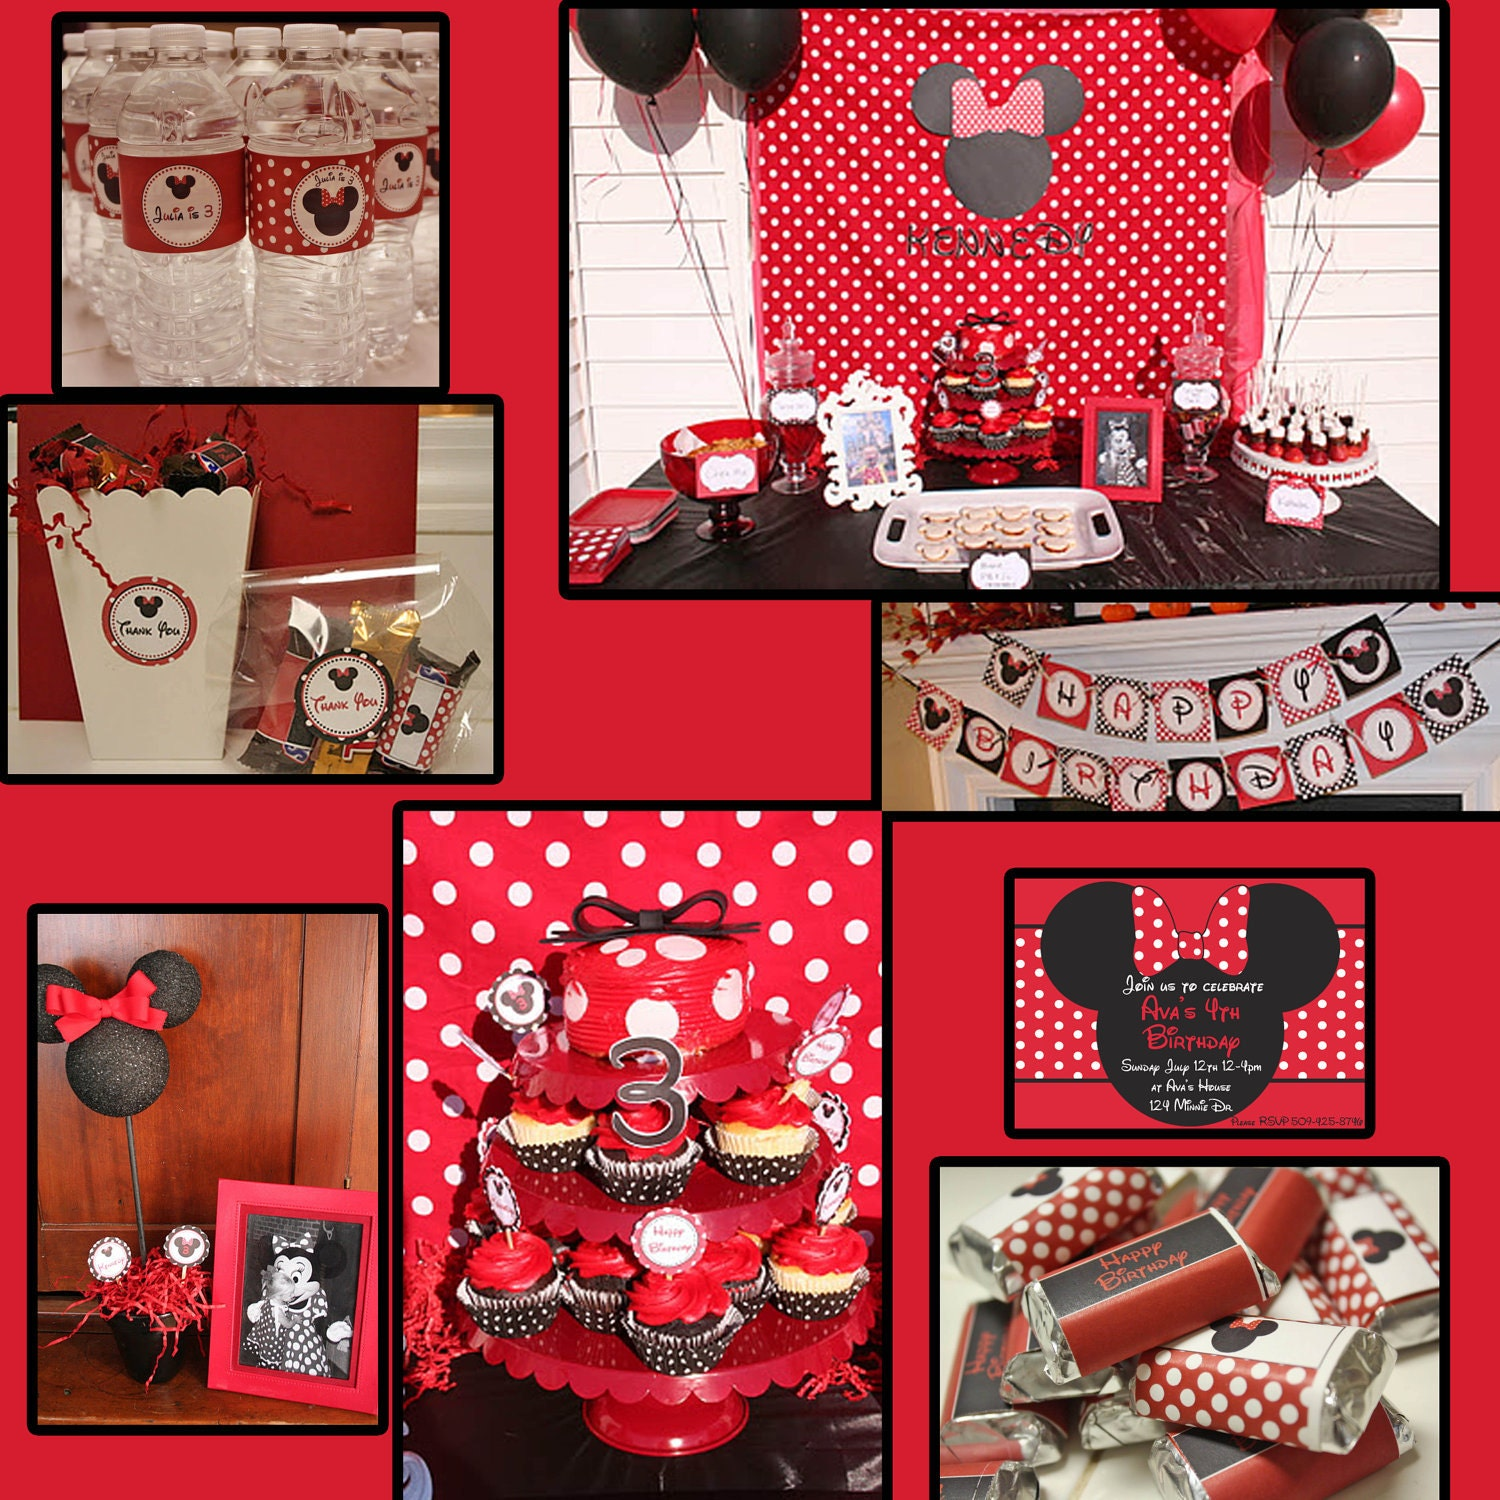 Minnie Mouse Birthday Decorations Red And Black Image